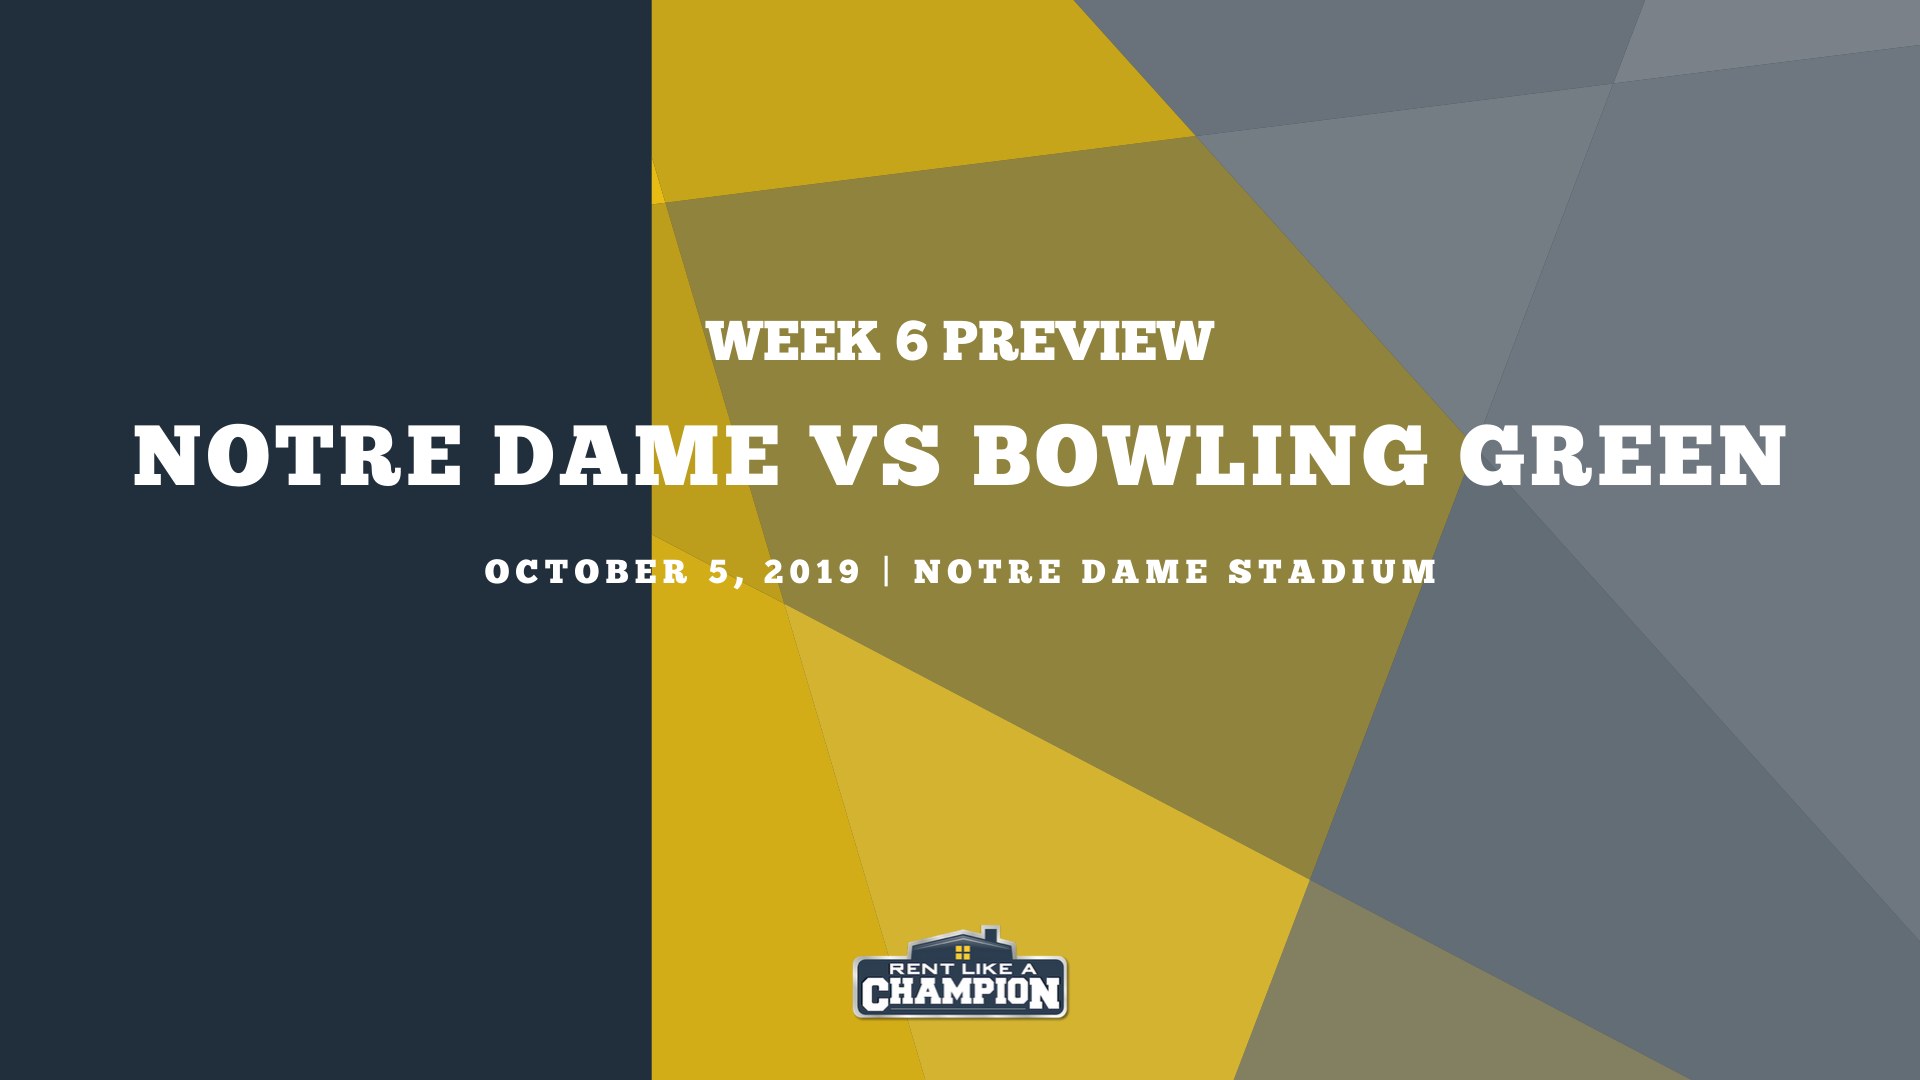 Notre Dame Game Preview Template (3)